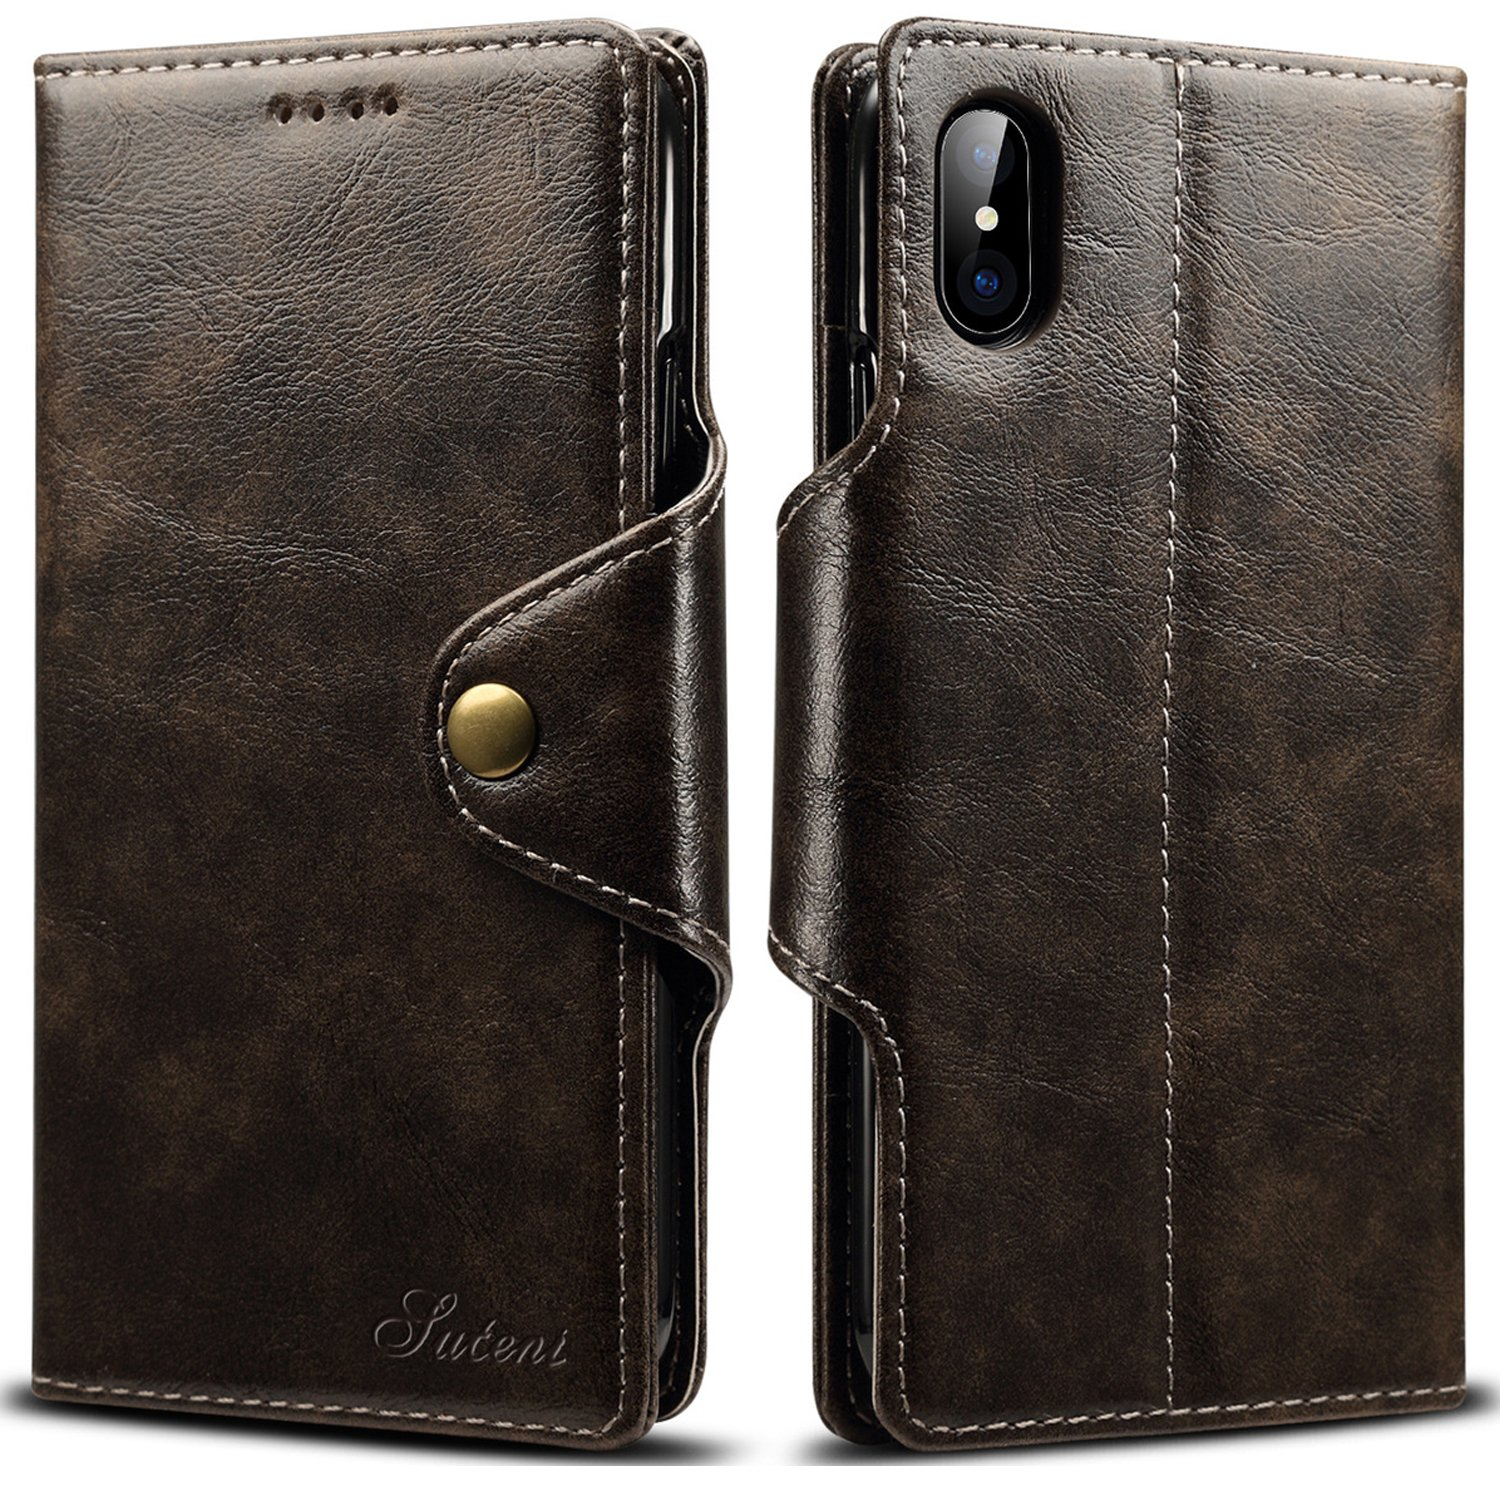 iPhone X,iPhone 7/8+ Leather Wallet Case With Card Holder Stand Folio Flip Cover (iPhone 7 Plus/8 Plus (5.5'), Brown) iPhone 7/8+ Leather Wallet Case With Card Holder Stand Folio Flip Cover (iPhone 7 Plus/8 Plus (5.5)